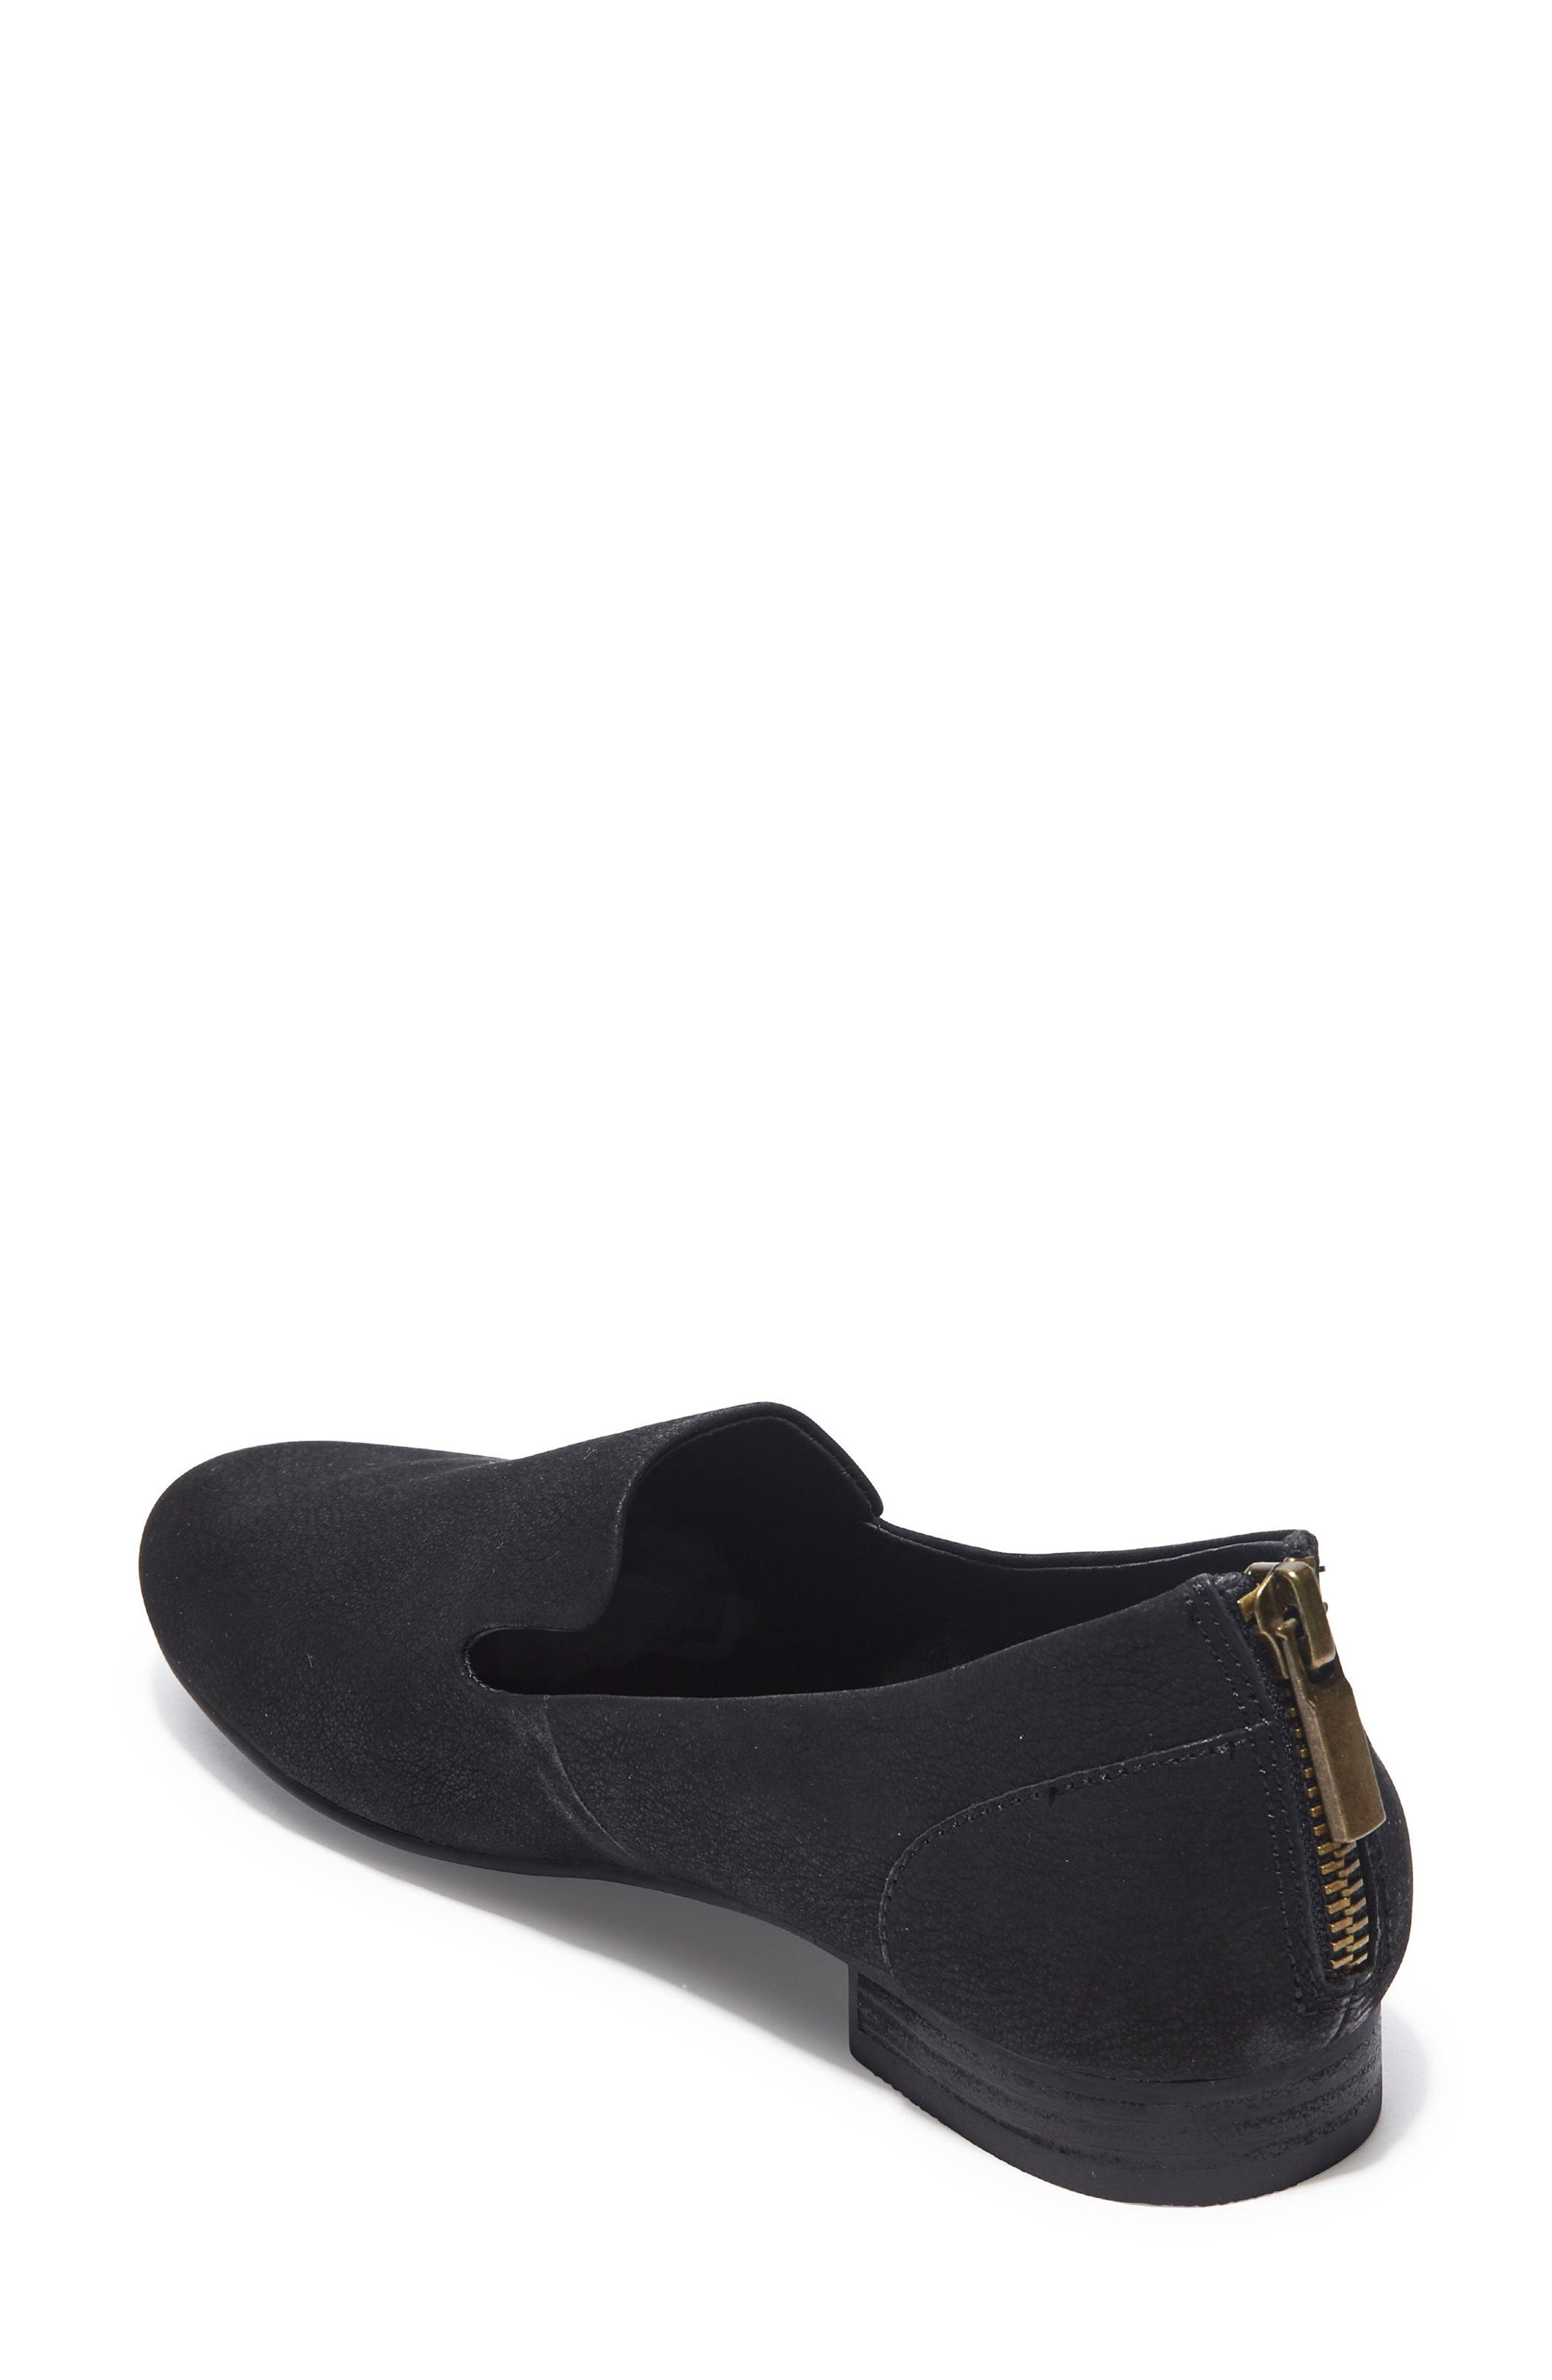 Marina Zip Loafer,                             Alternate thumbnail 5, color,